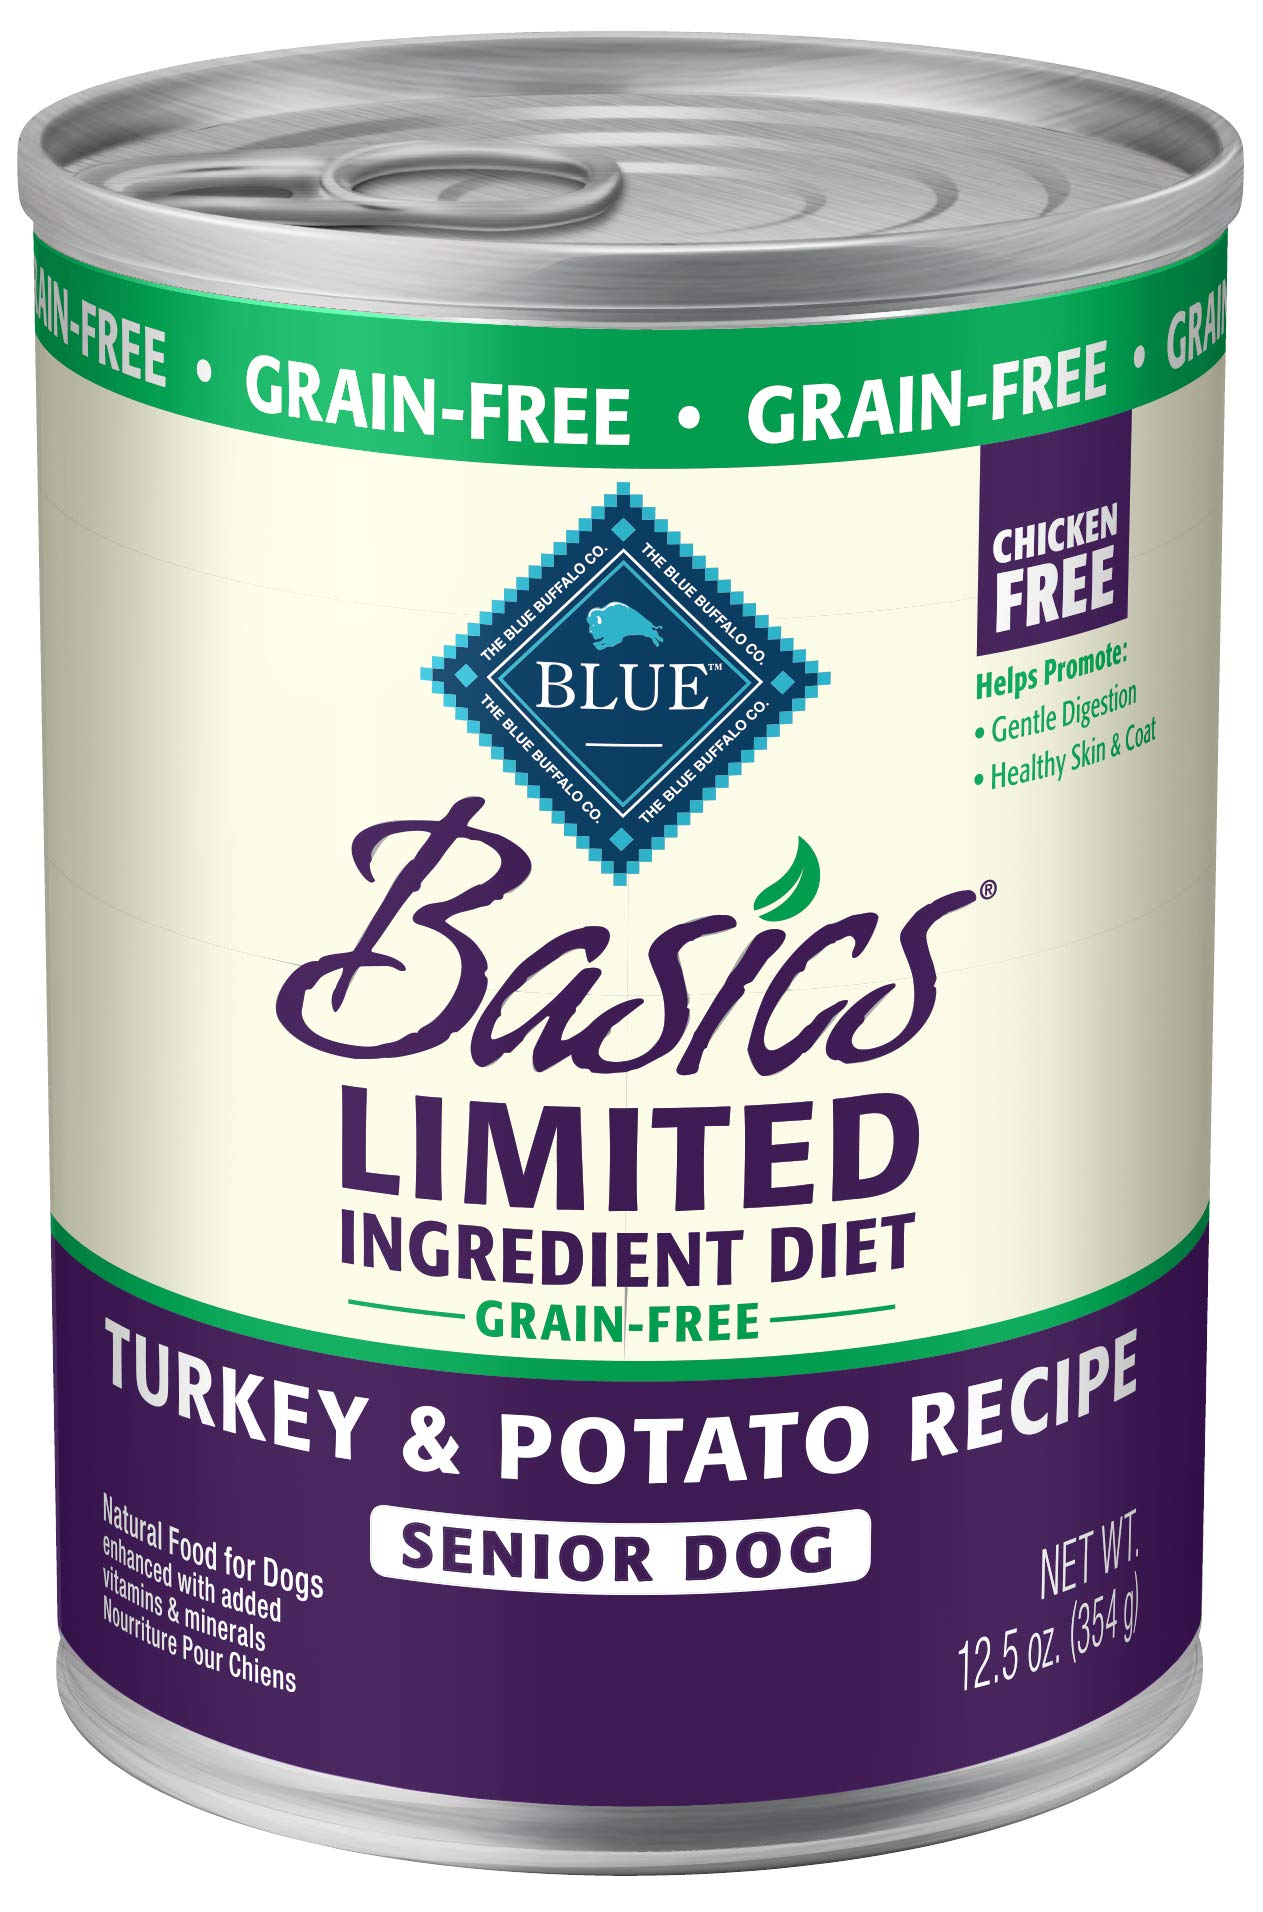 Blue Basics Limited Ingredient Diet Senior Grain Free Turkey & Potato  Wet Dog Food 12.5-Oz (Pack Of 12) by Blue Buffalo